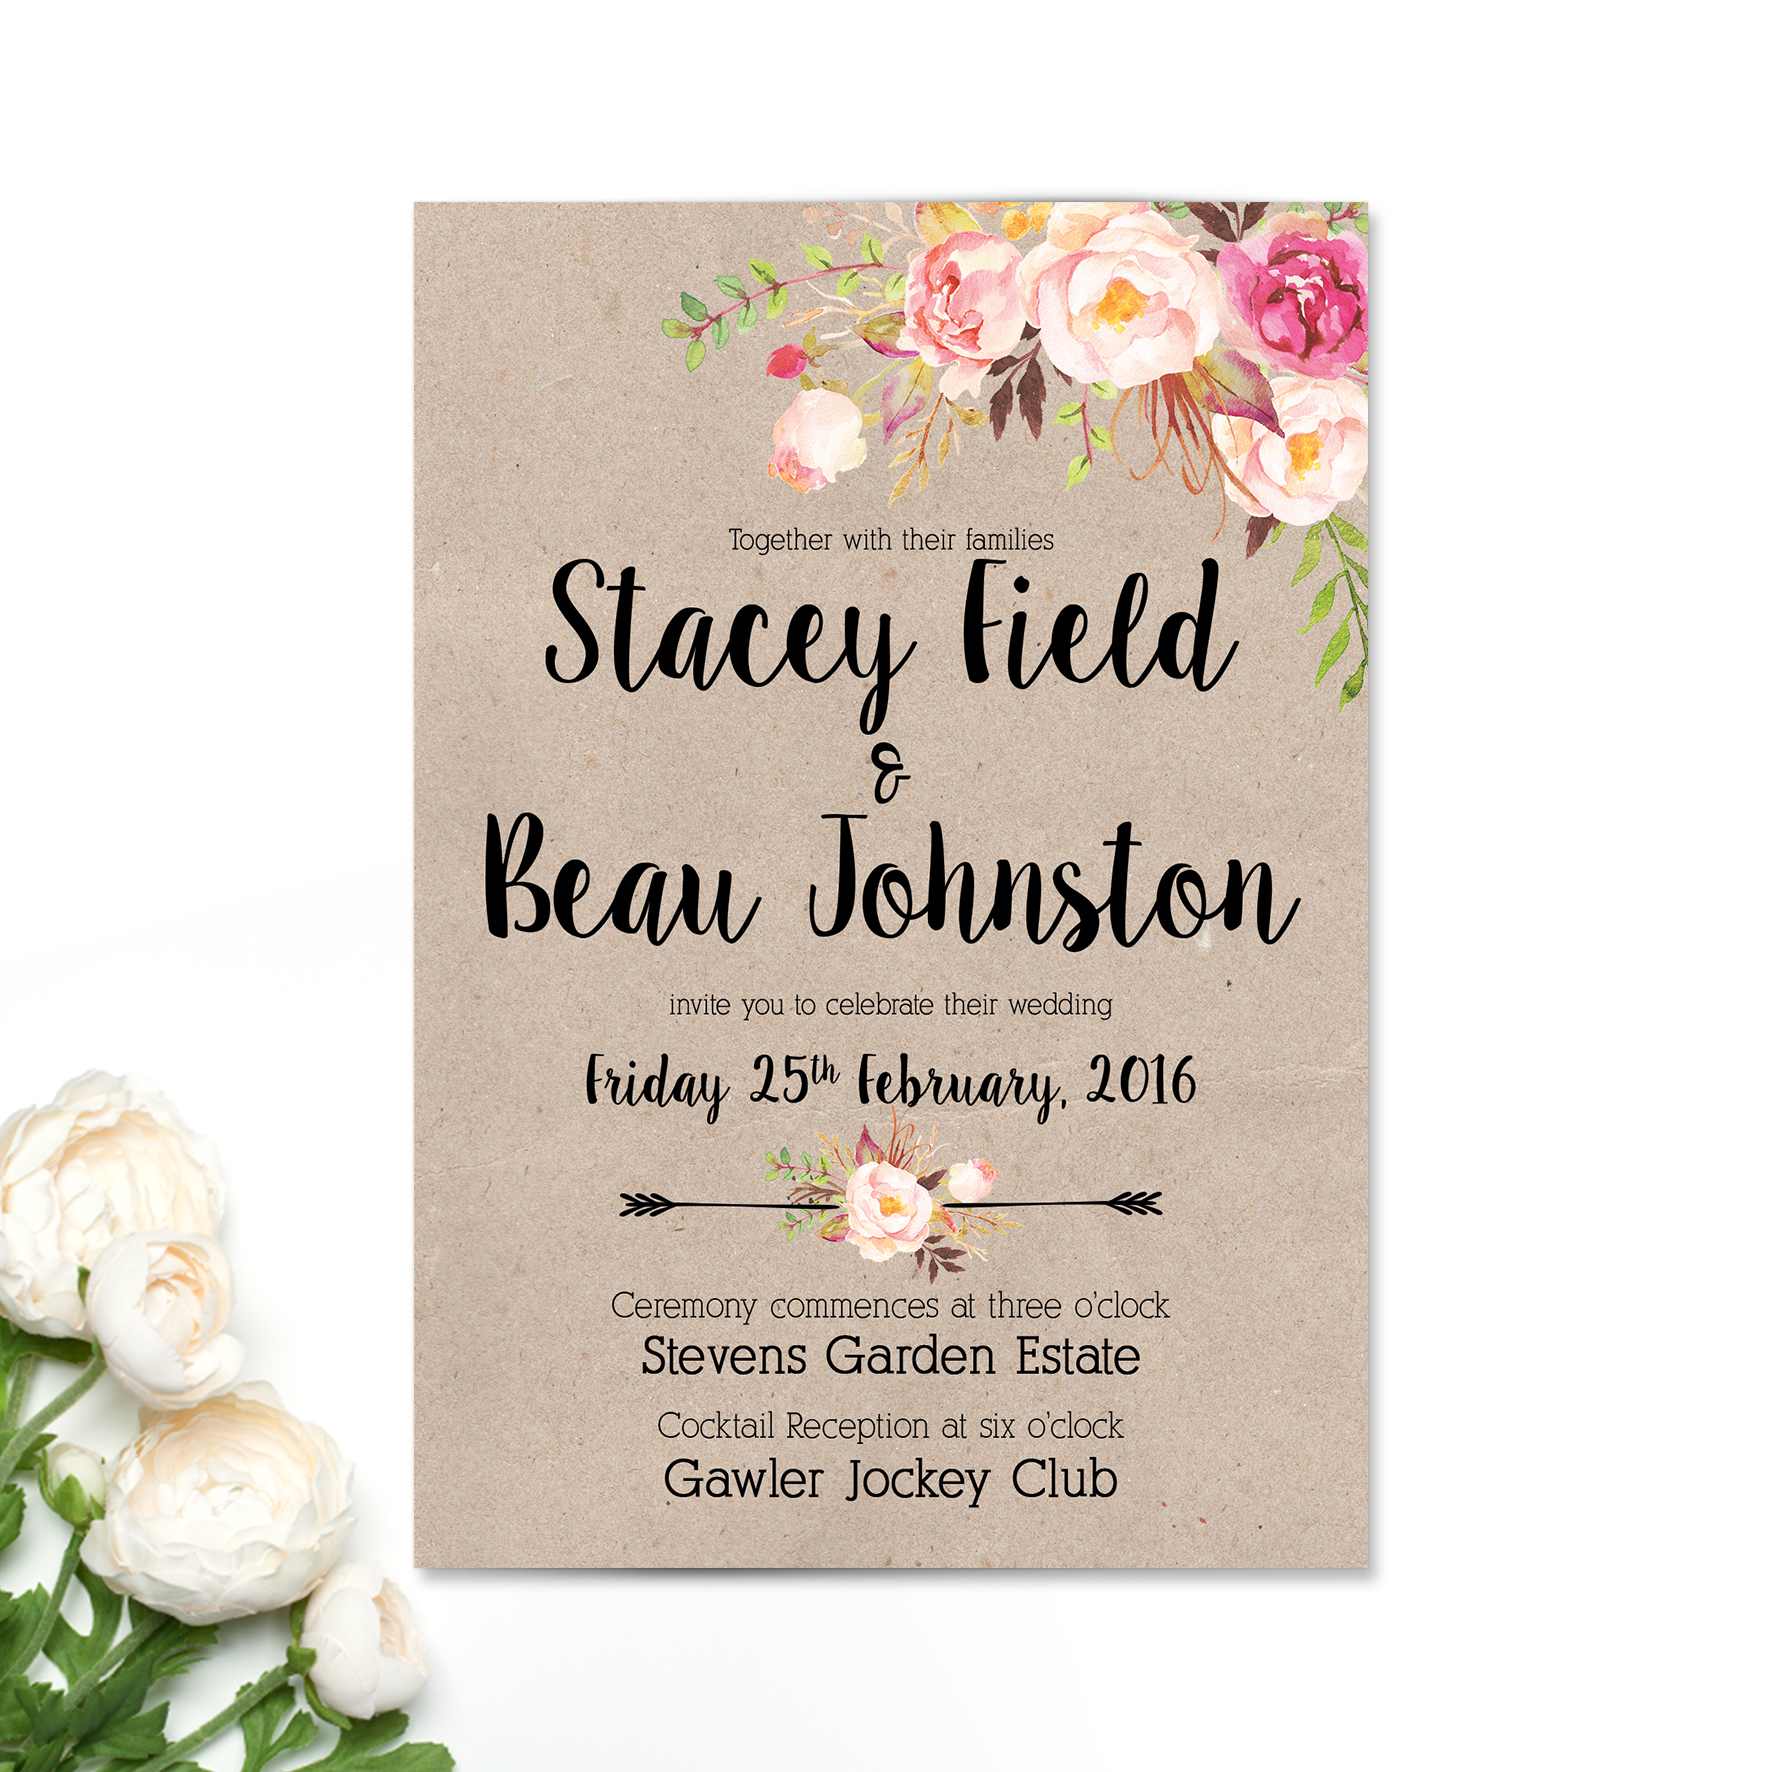 Stacey + Beau Wedding Invitation